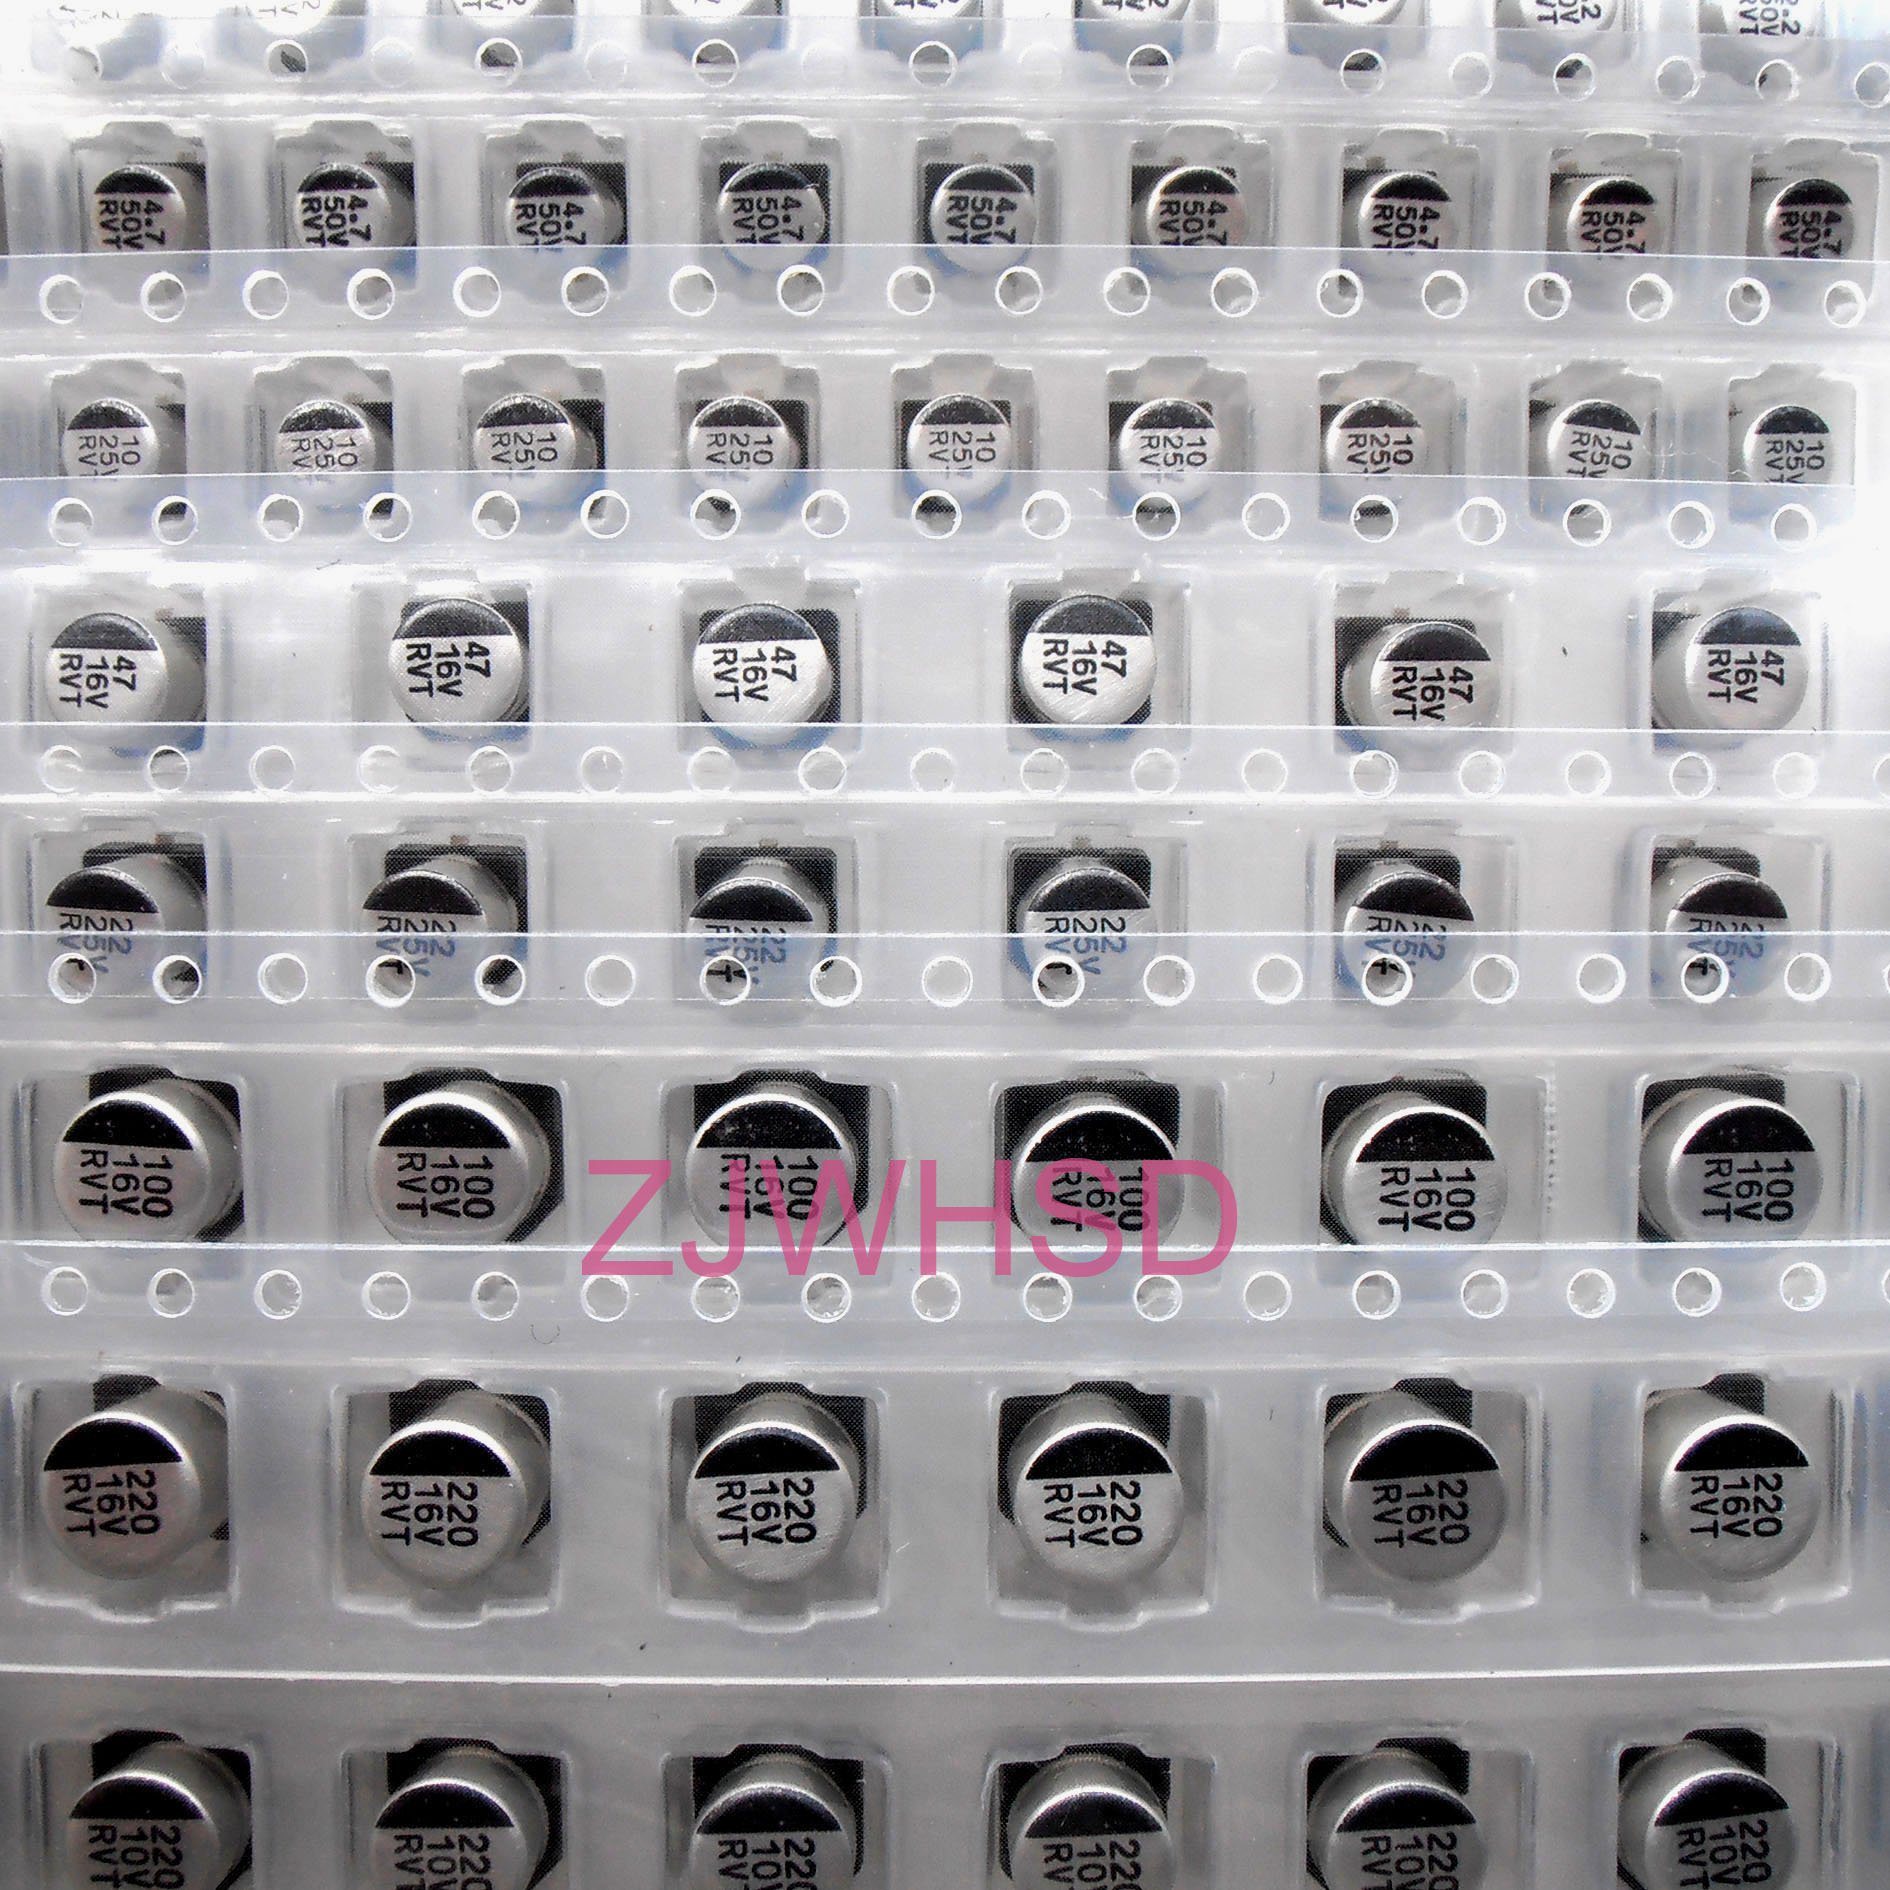 (1uF-220uF) 130pcs 13Value SMD Aluminum Electrolytic Capacitor Assorted Kit Set [waynetool]